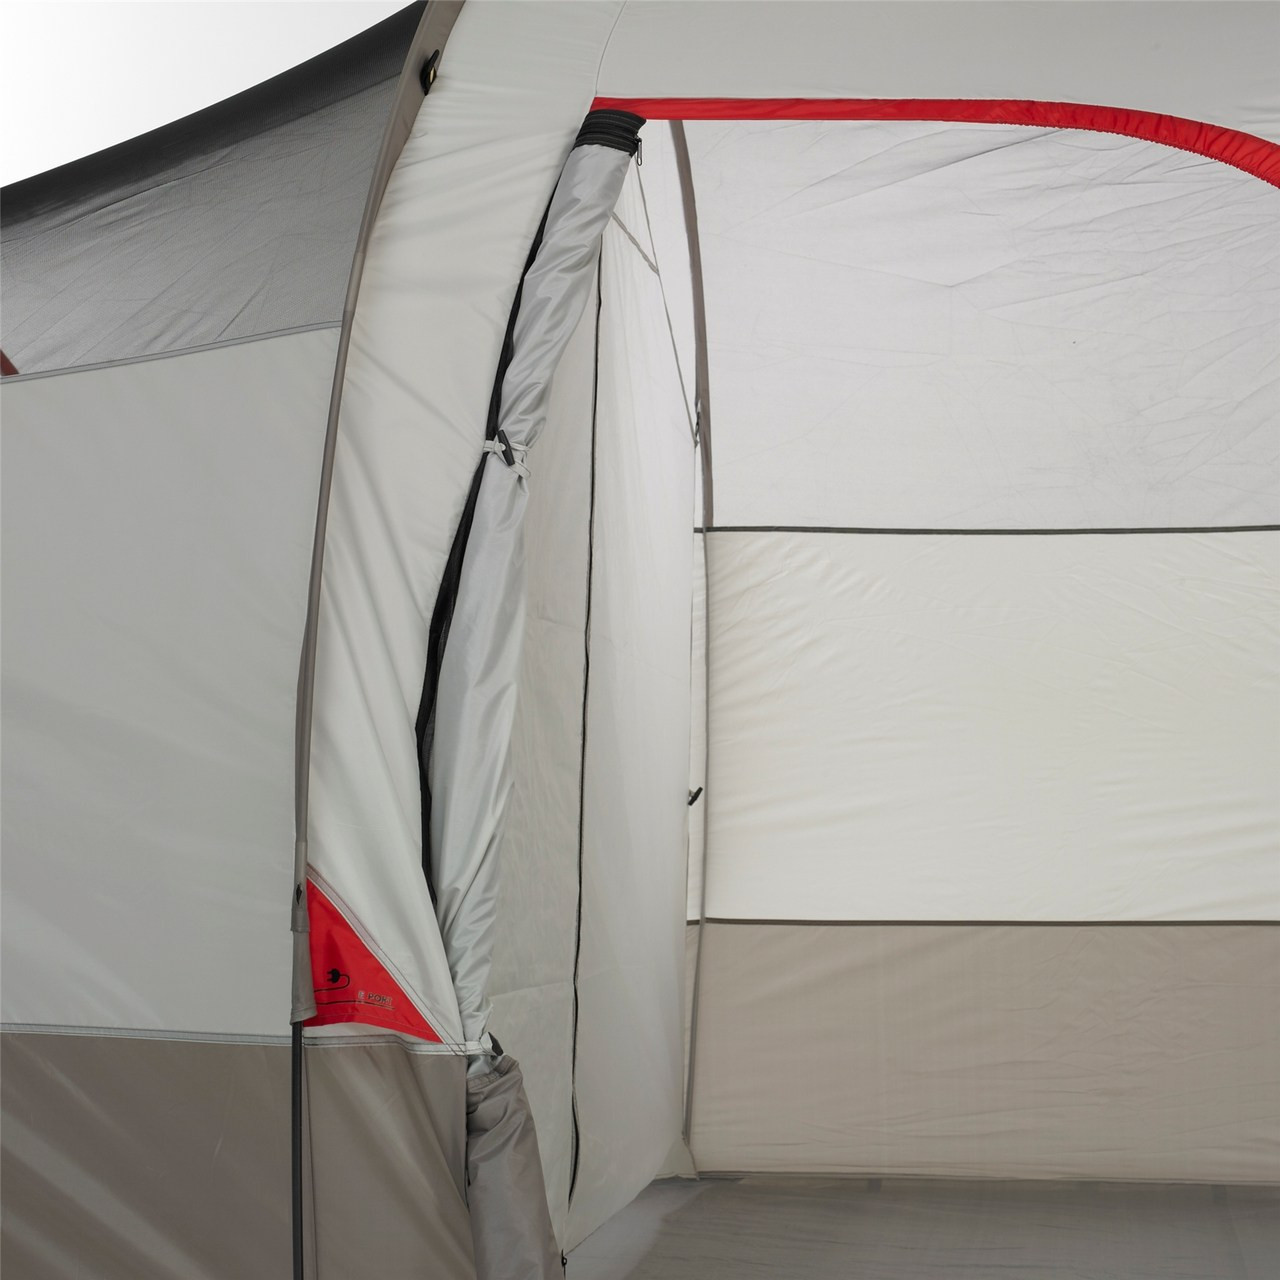 Close up view of the Wenzel Blue Ridge 7 tent, white and gray, with a door rolled closed showing a big interior room of the tent